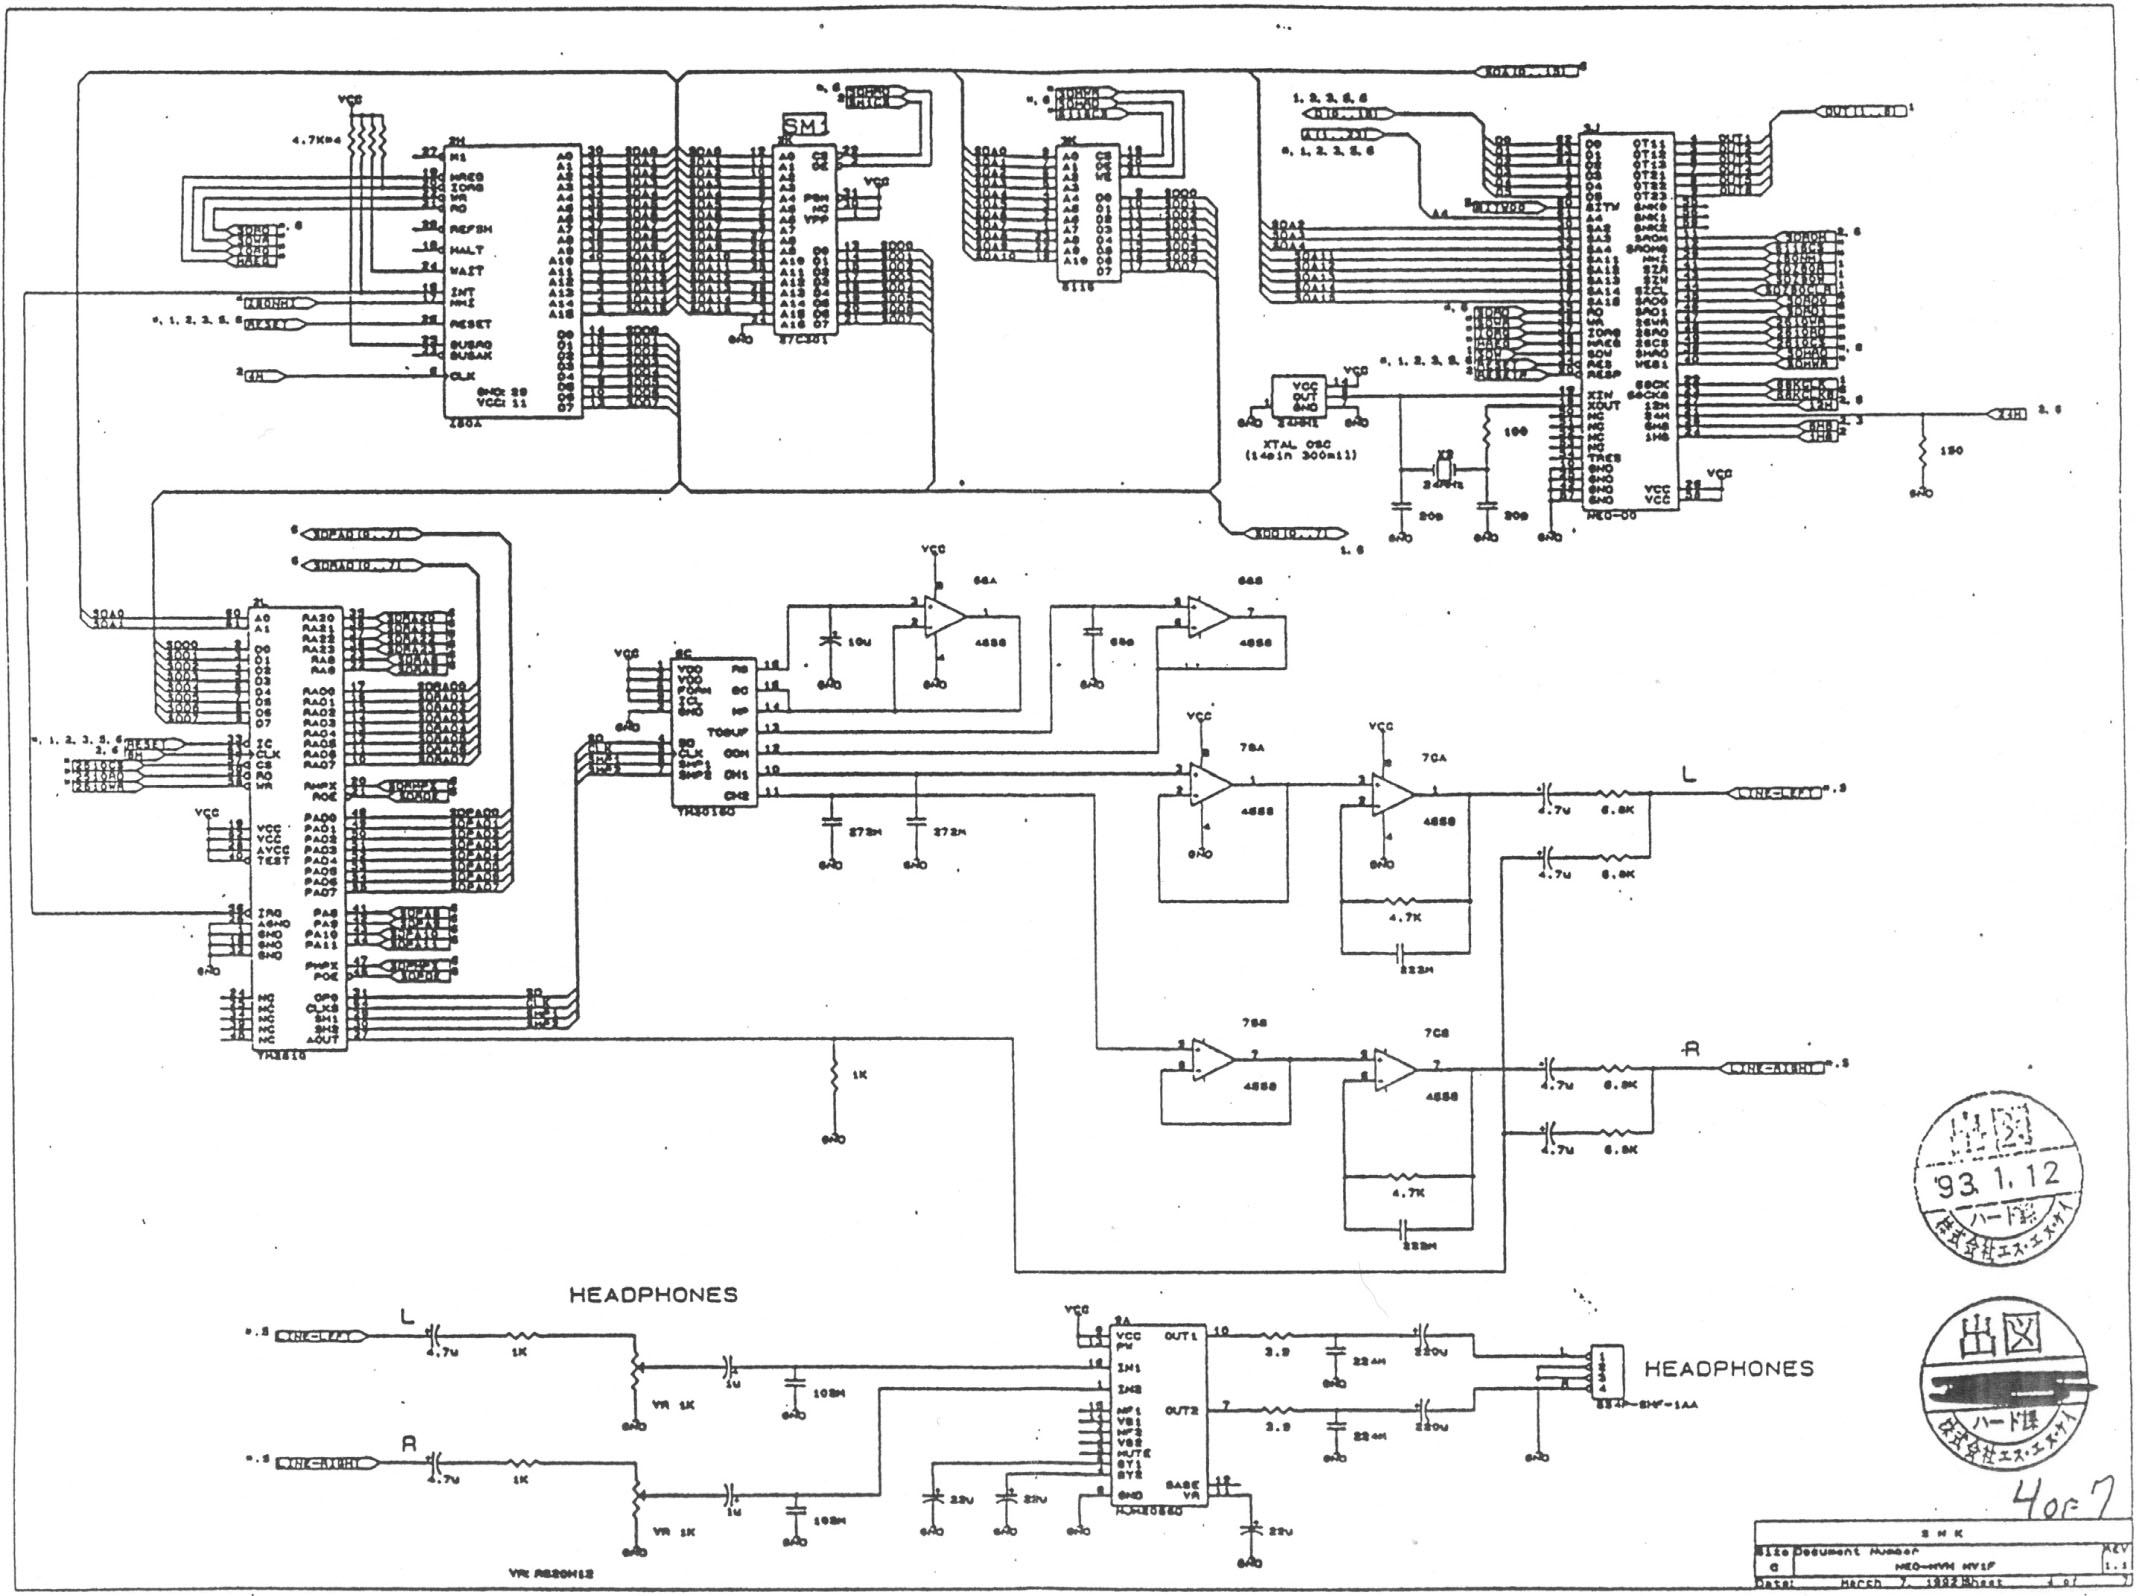 schematics console related schematics nfg games gamesx mvs mv1fs schematic page 4